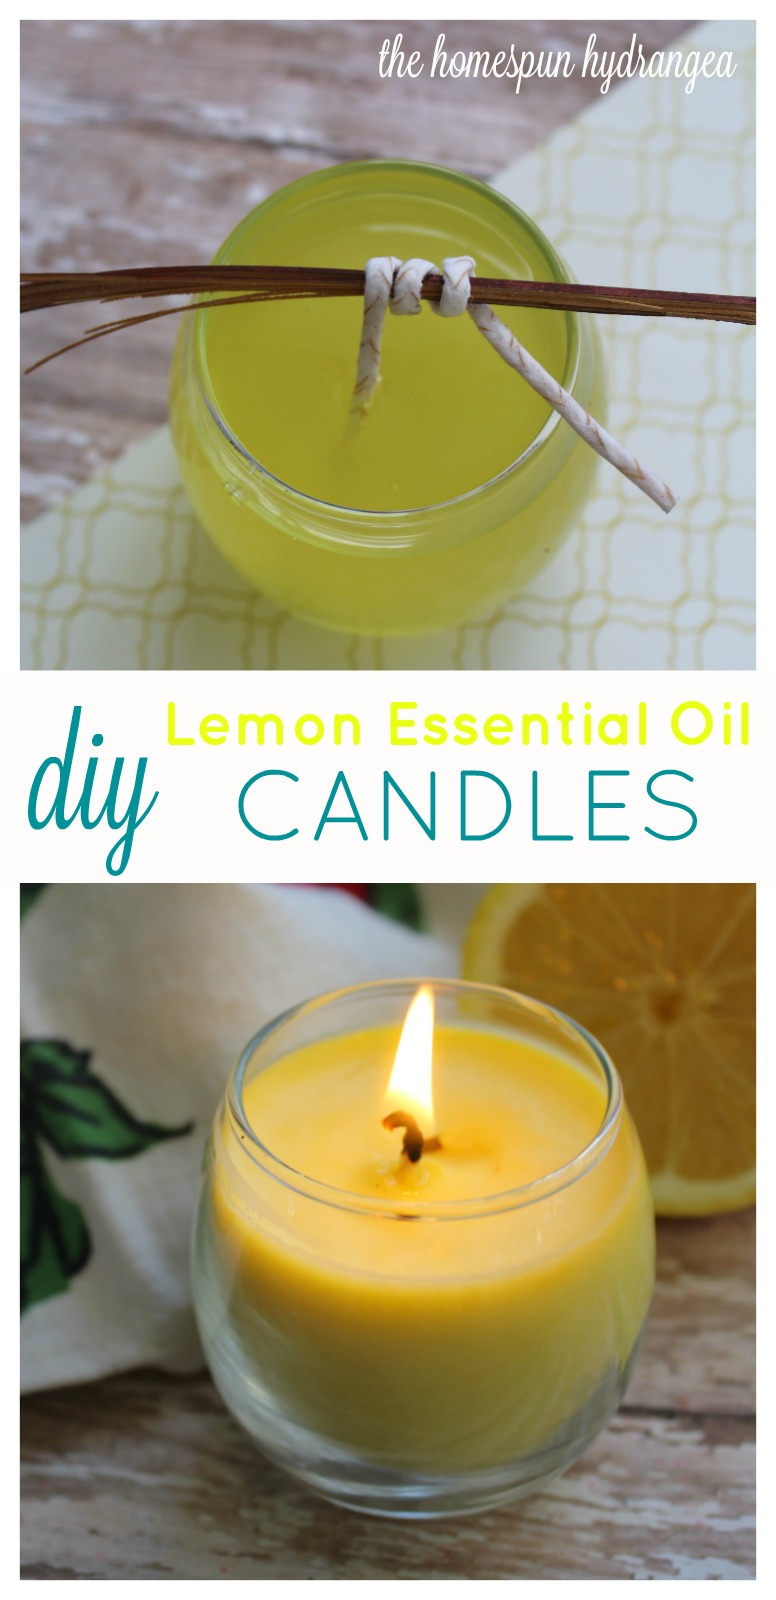 Homemade Lemon Essential Oil Candles Recipe The Homespun